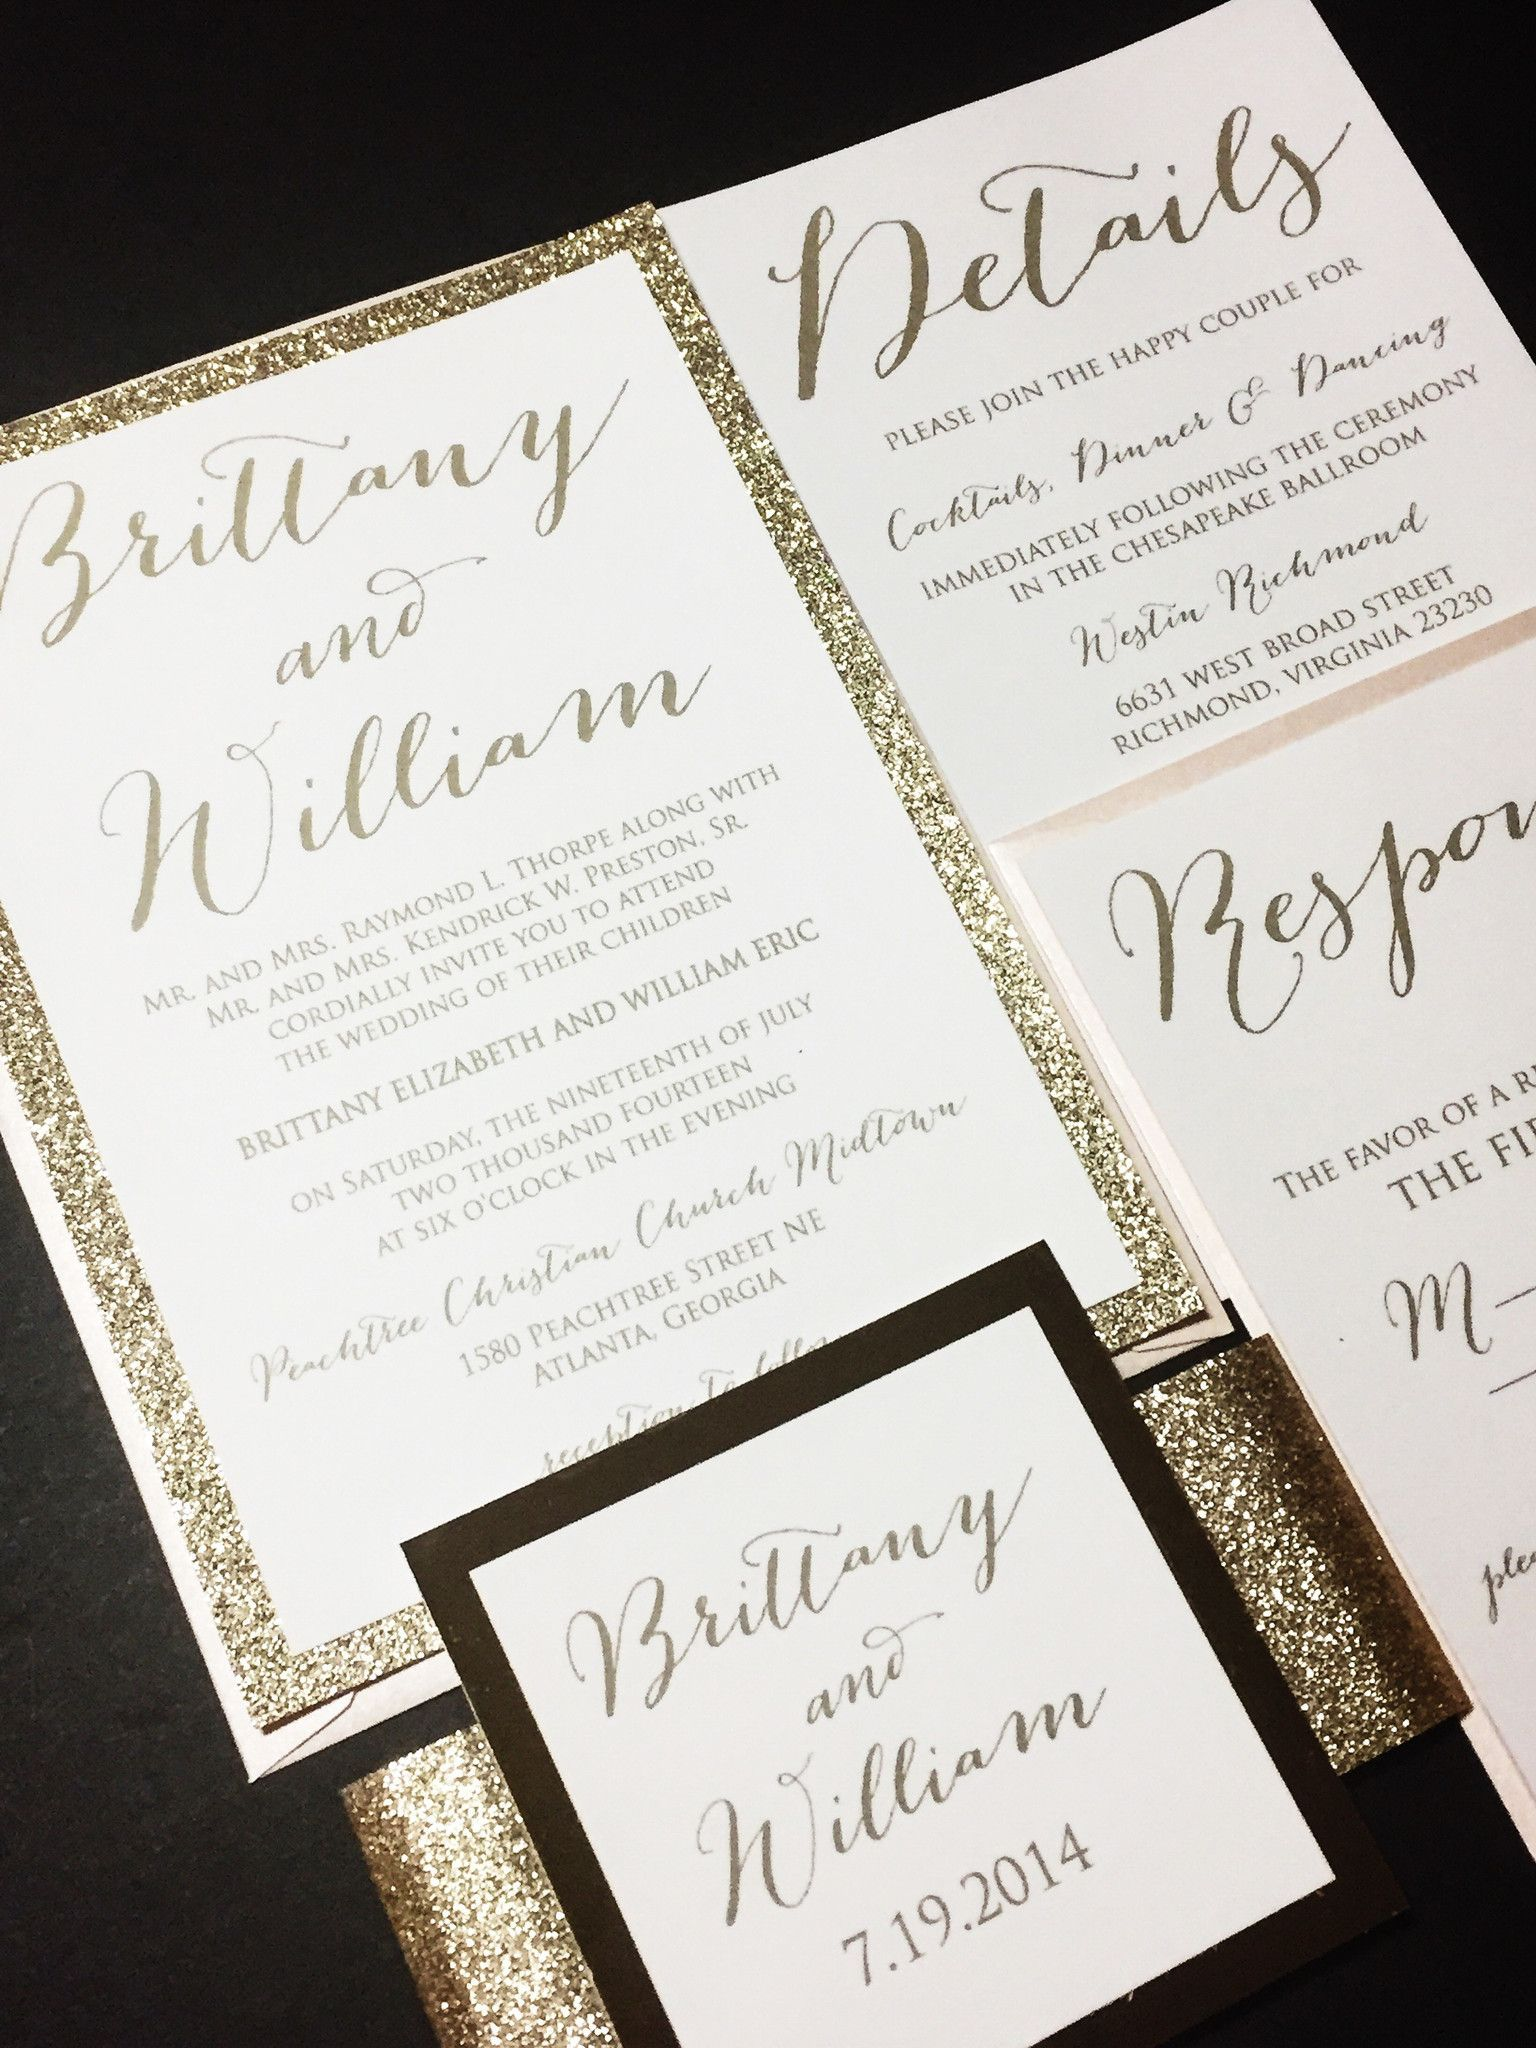 Glitter Wedding Invitation, Luxury Wedding Invitation, Elegant ...